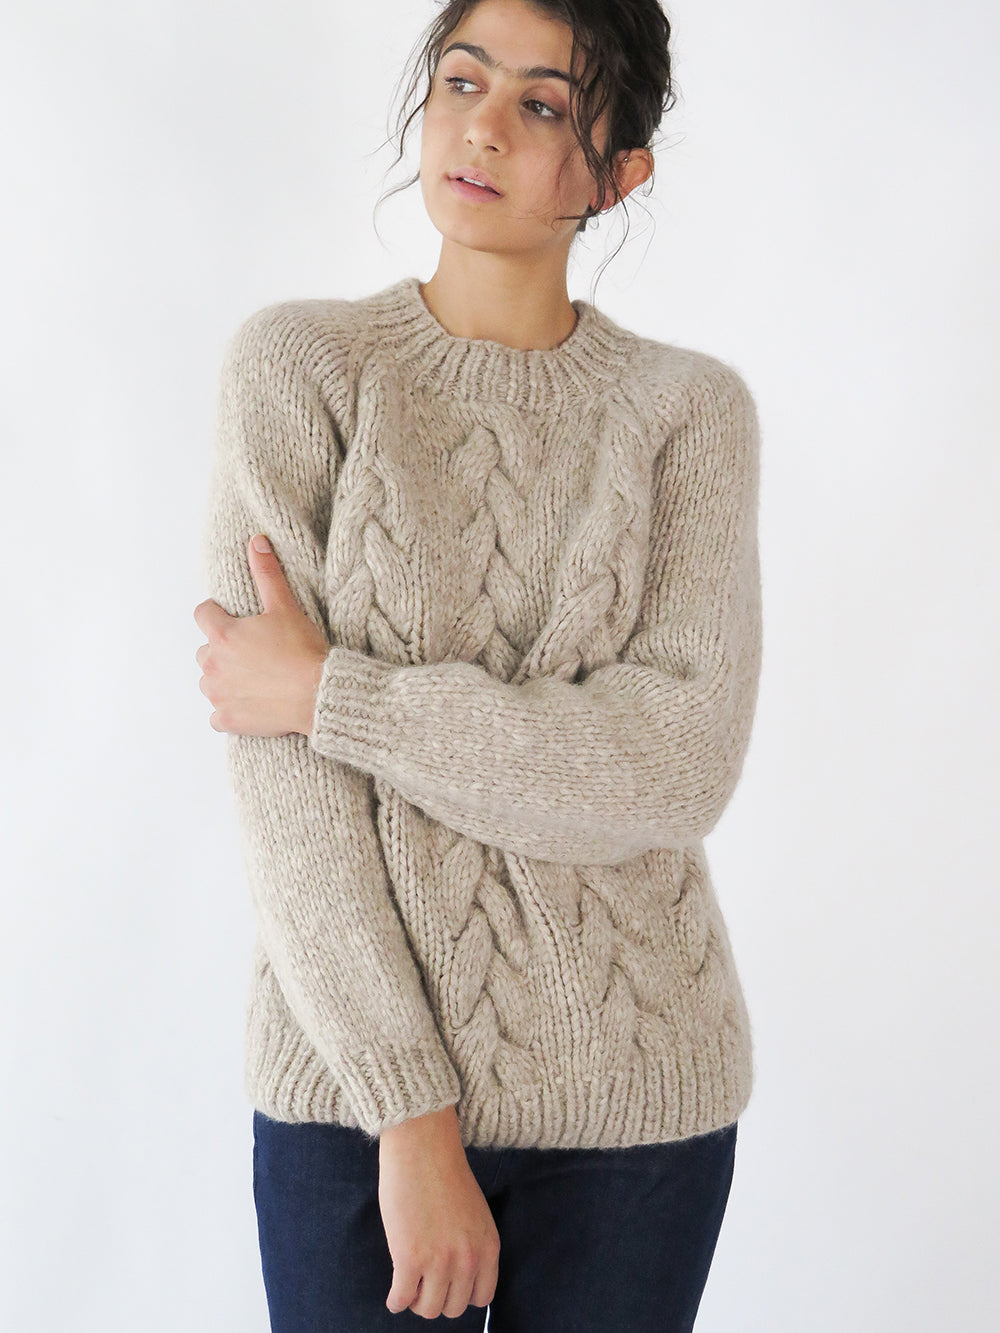 aymara sublime chunky sweater in camel